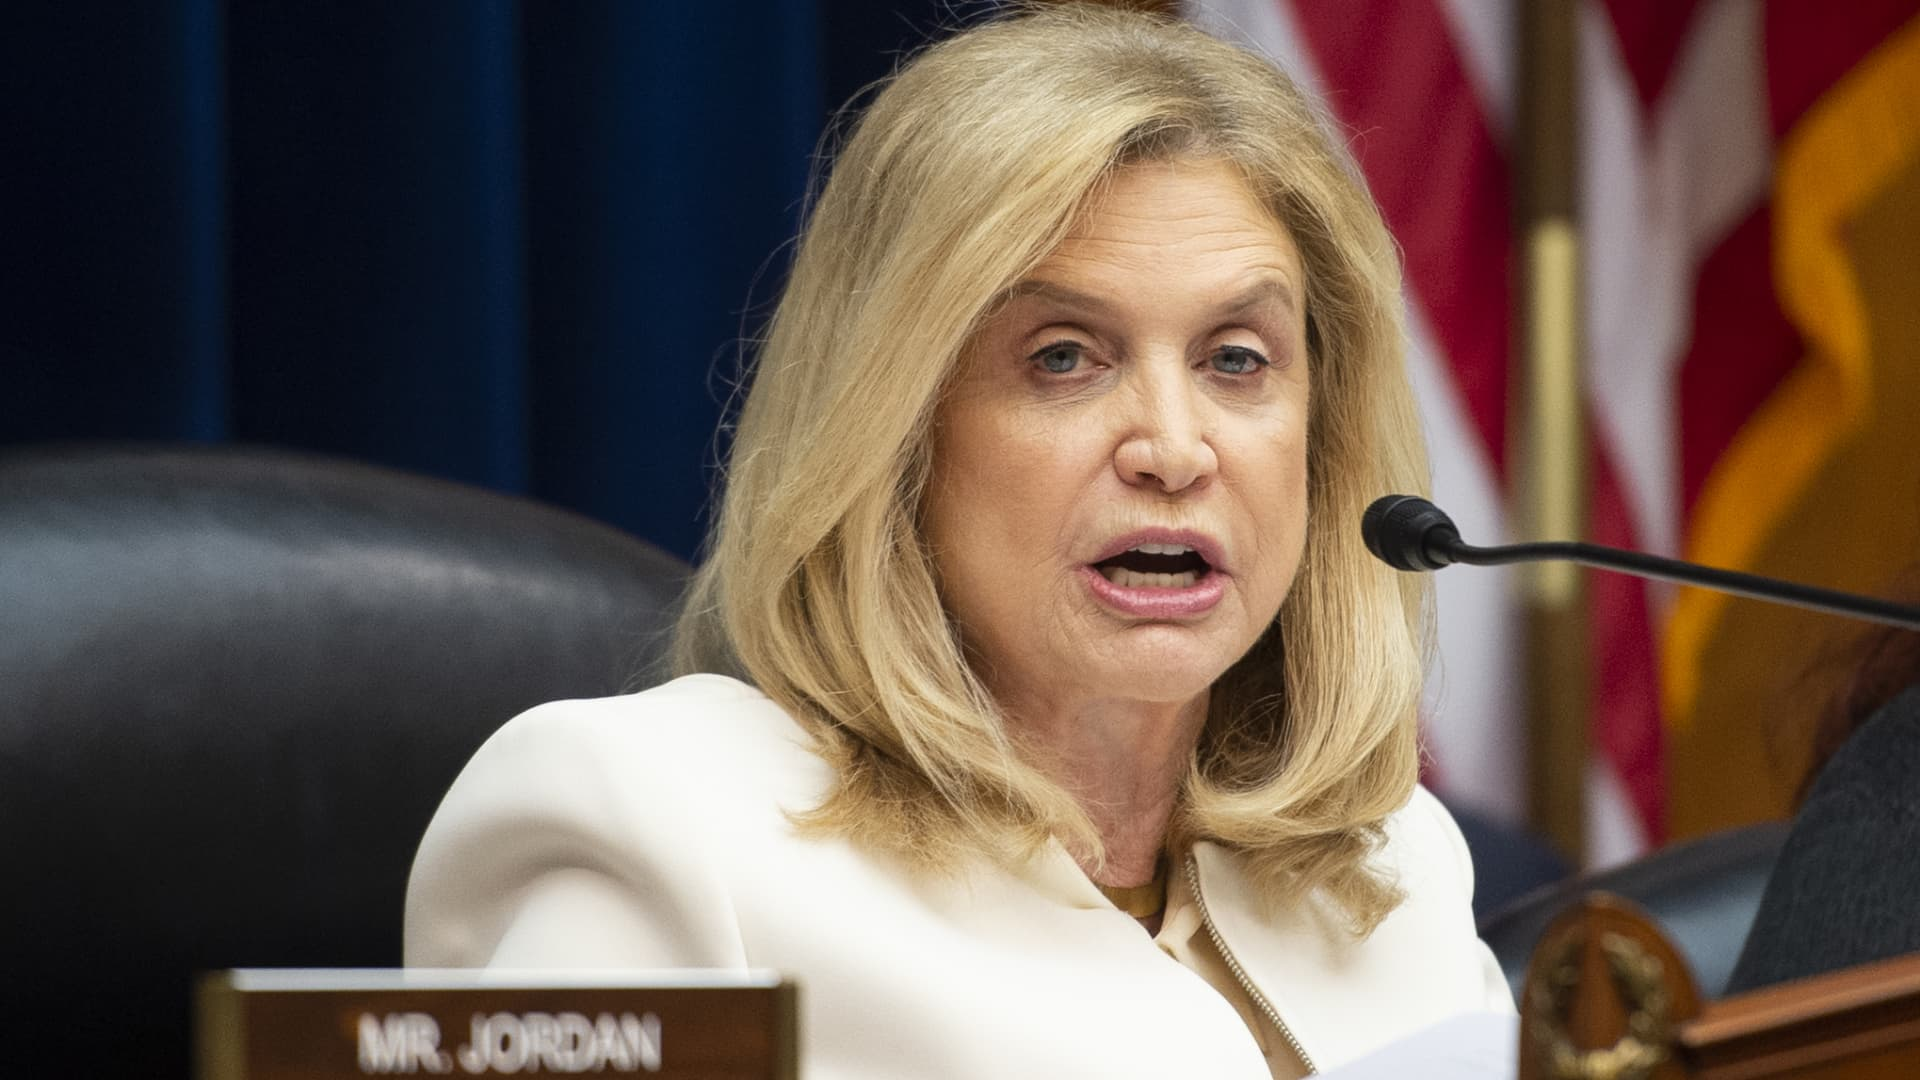 Chairwoman Carolyn Maloney, D-N.Y., speaks during a House Oversight and Reform Committee hearing on D.C. statehood on Tuesday, Feb. 11, 2020.